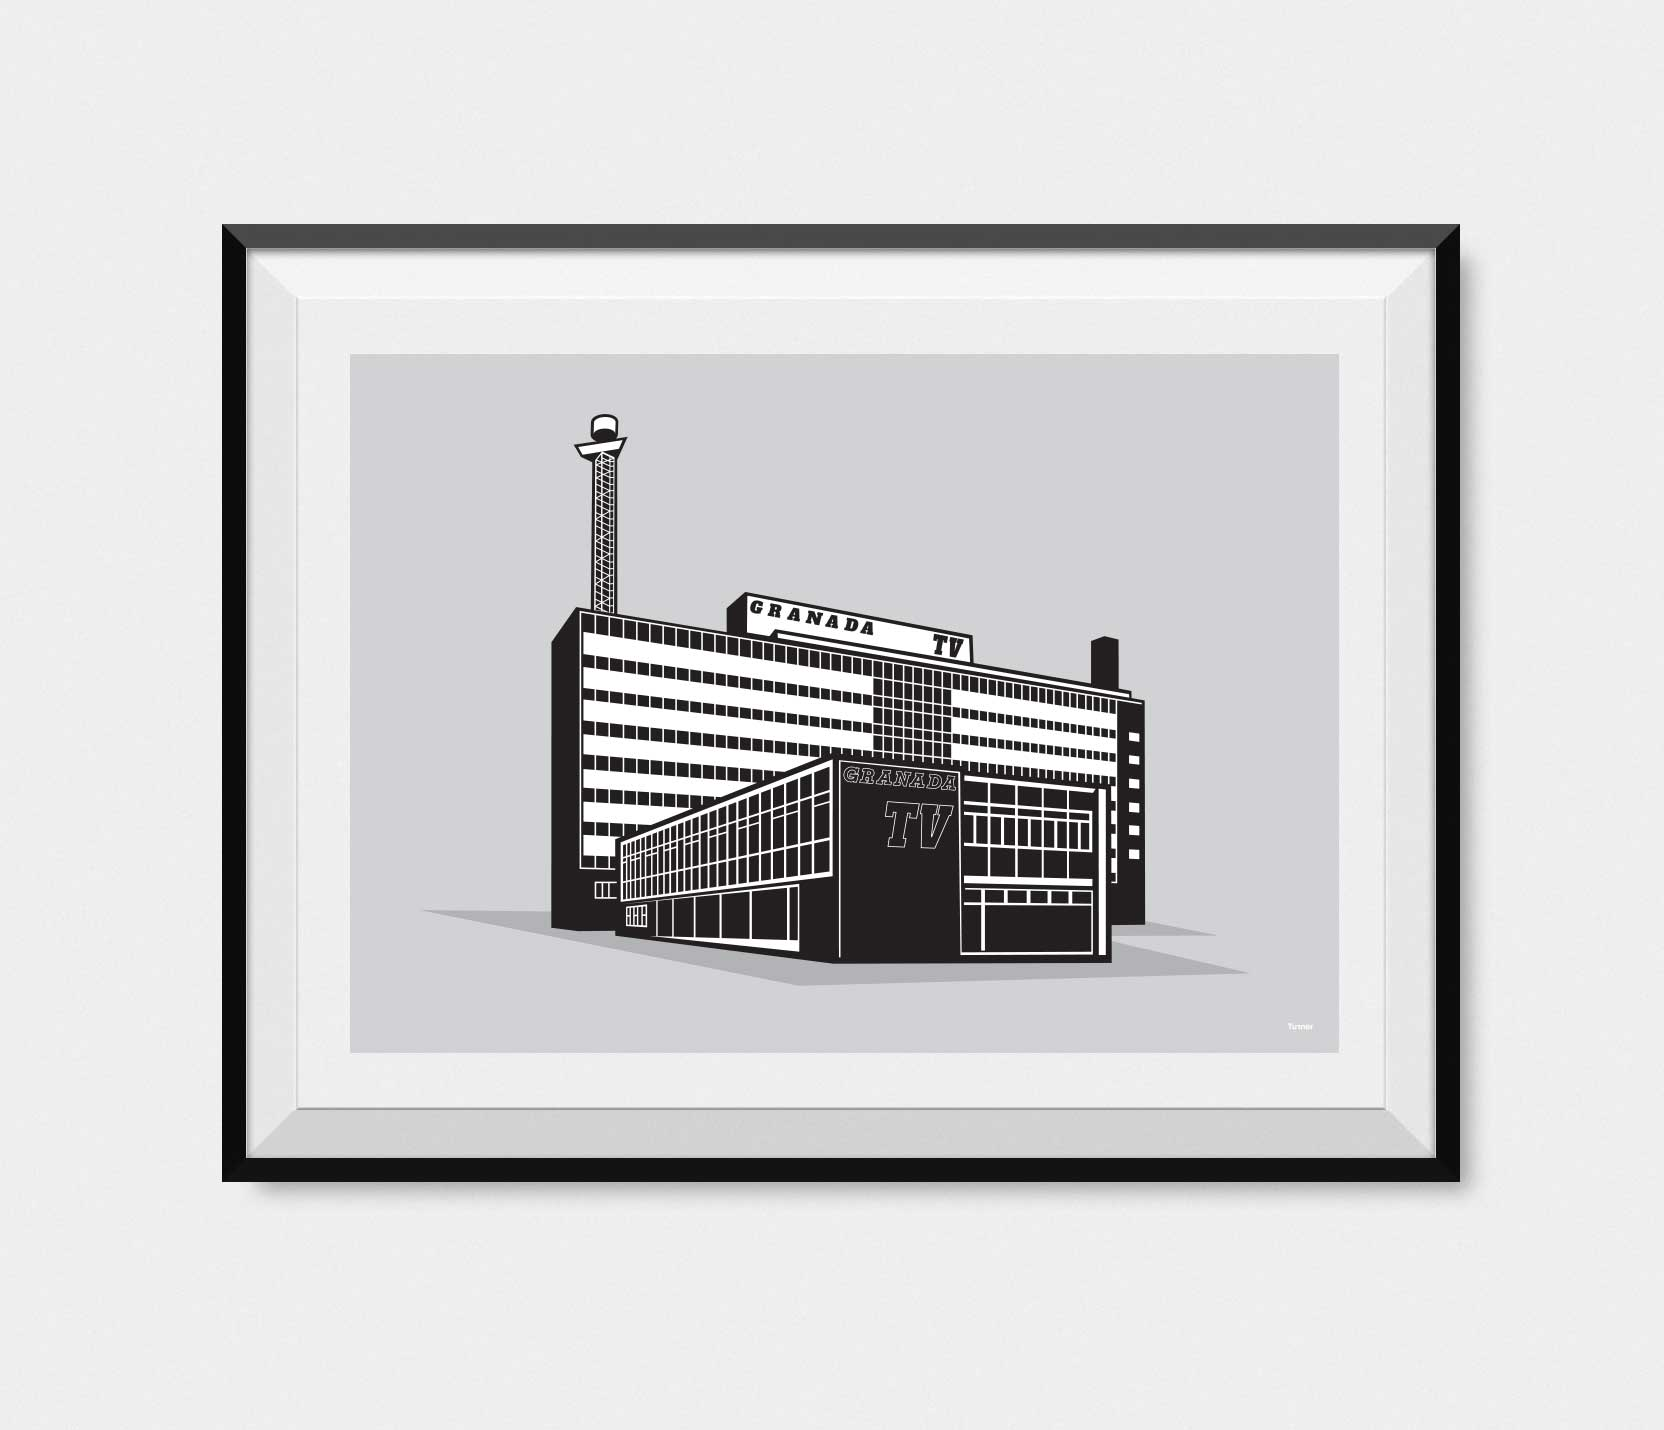 manchester art gallery framed illustration